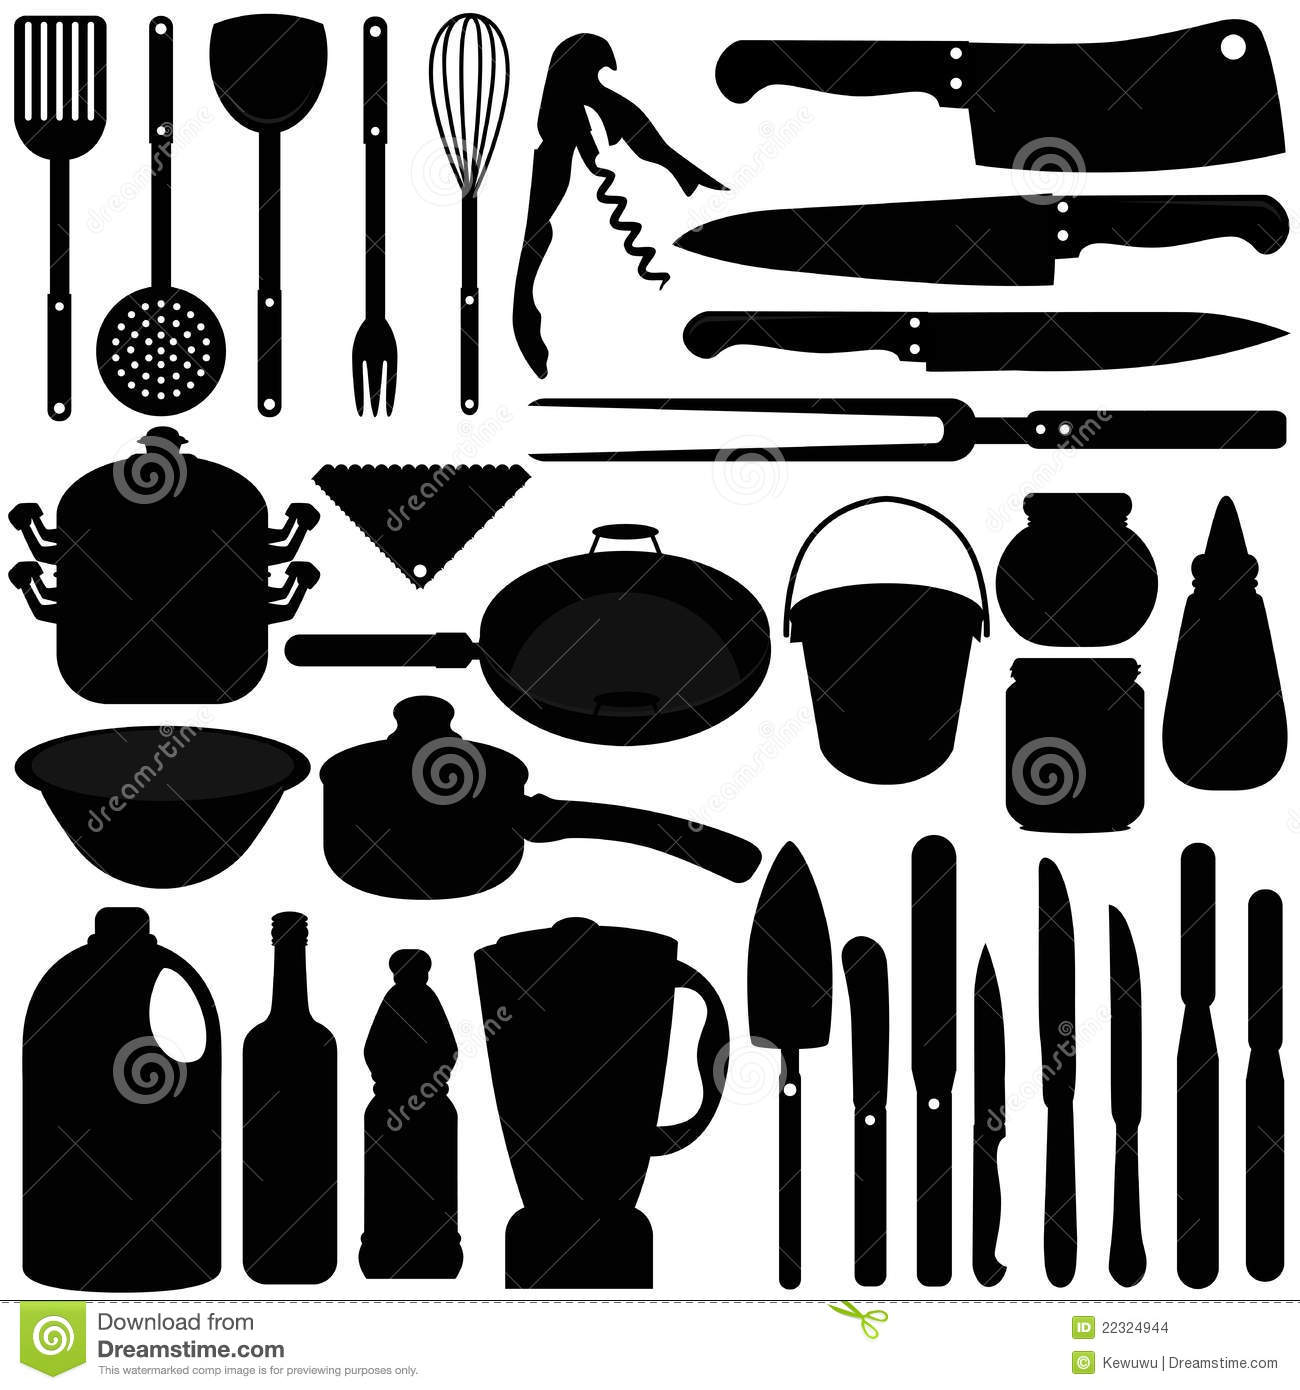 Tool And Equipment In Baking And Cooking | Home Design Ideas Essentials